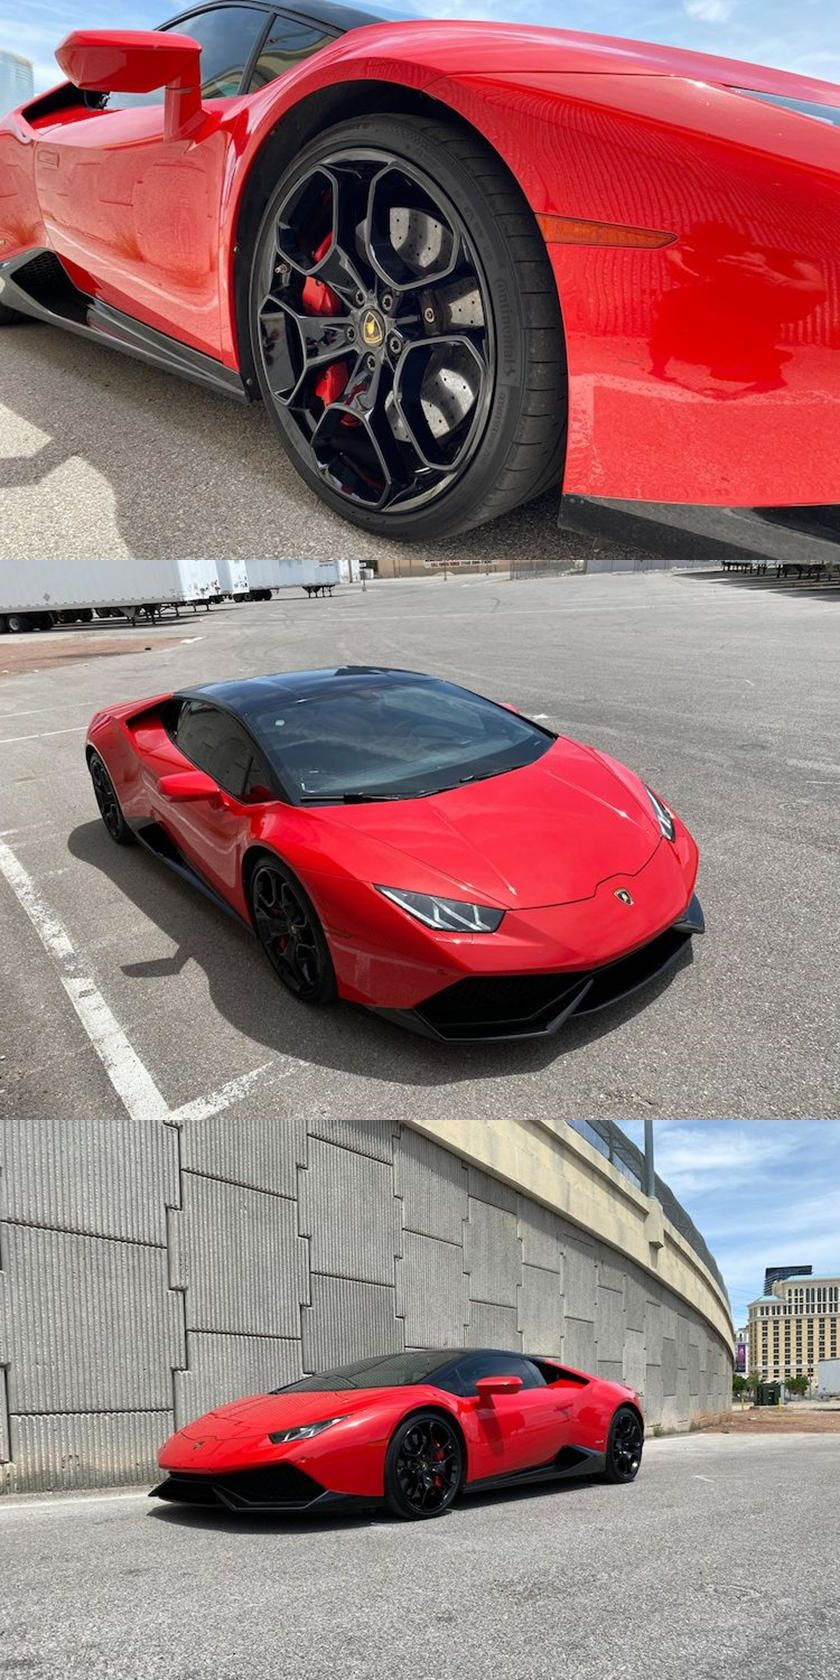 Lamborghini Huracan For Sale With Ridiculously High Mileage The Owner Calls It The Highest Mile In 2020 Lamborghini Huracan For Sale Lamborghini Huracan Lamborghini